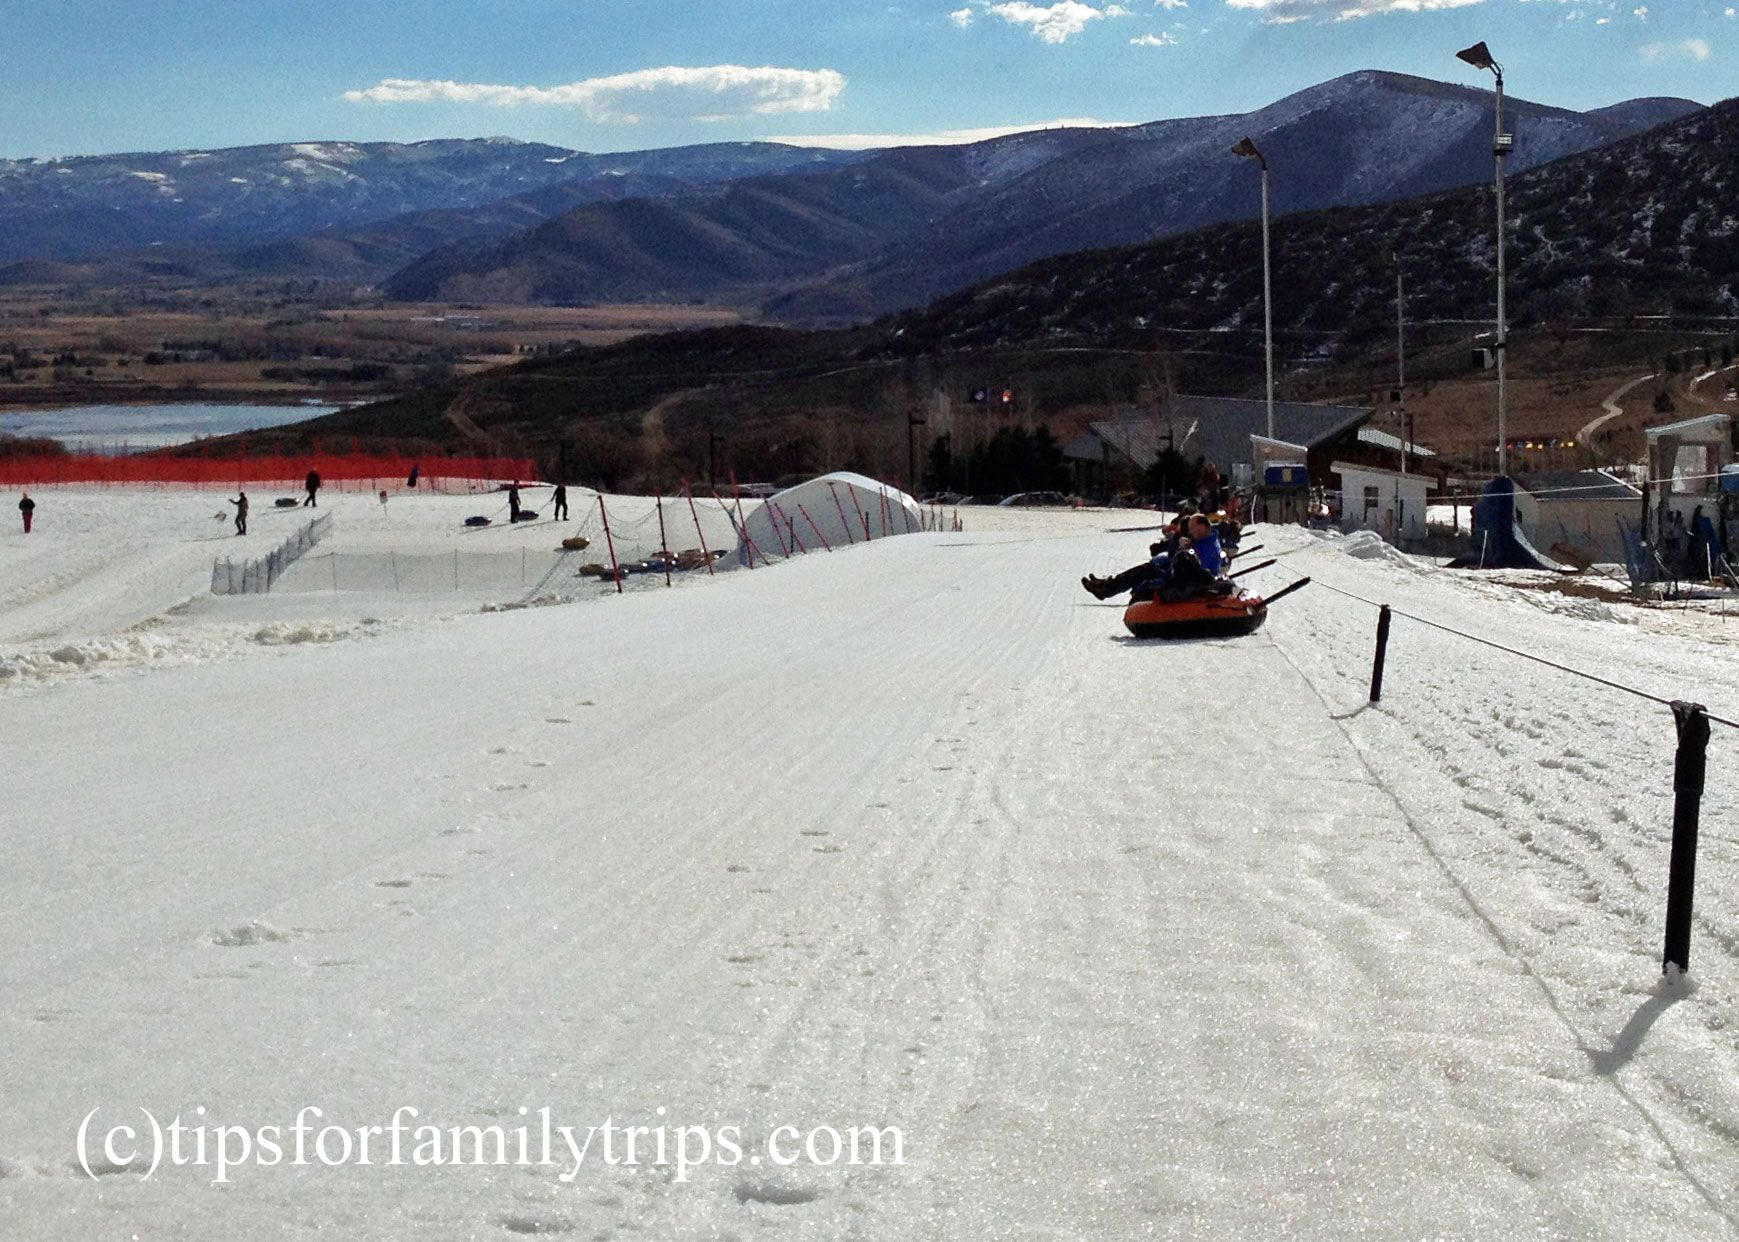 Big thrills on Soldier Hollow's snow tubing hill | Family